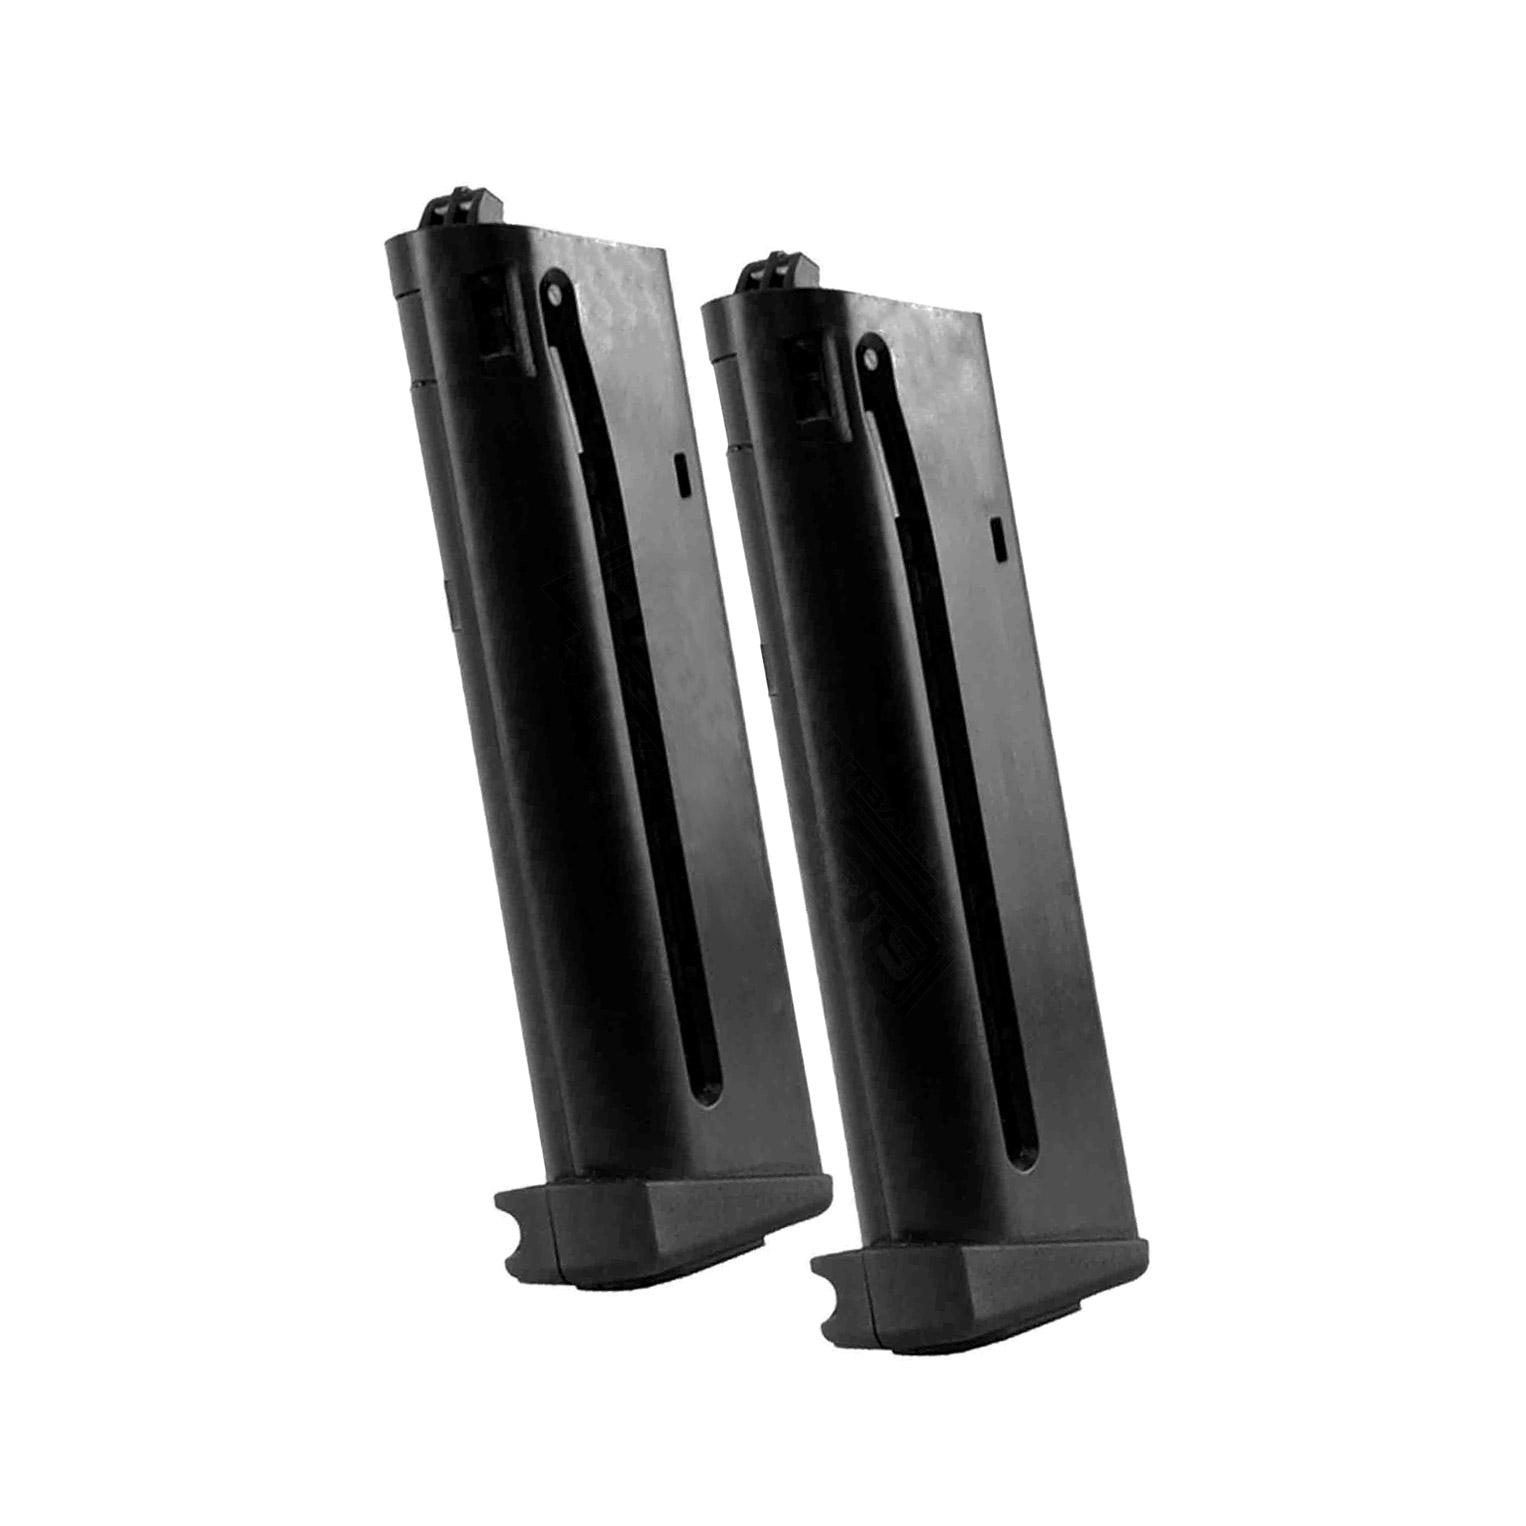 TiPX Tru-Feed Magazine 7 ball 2-Pack